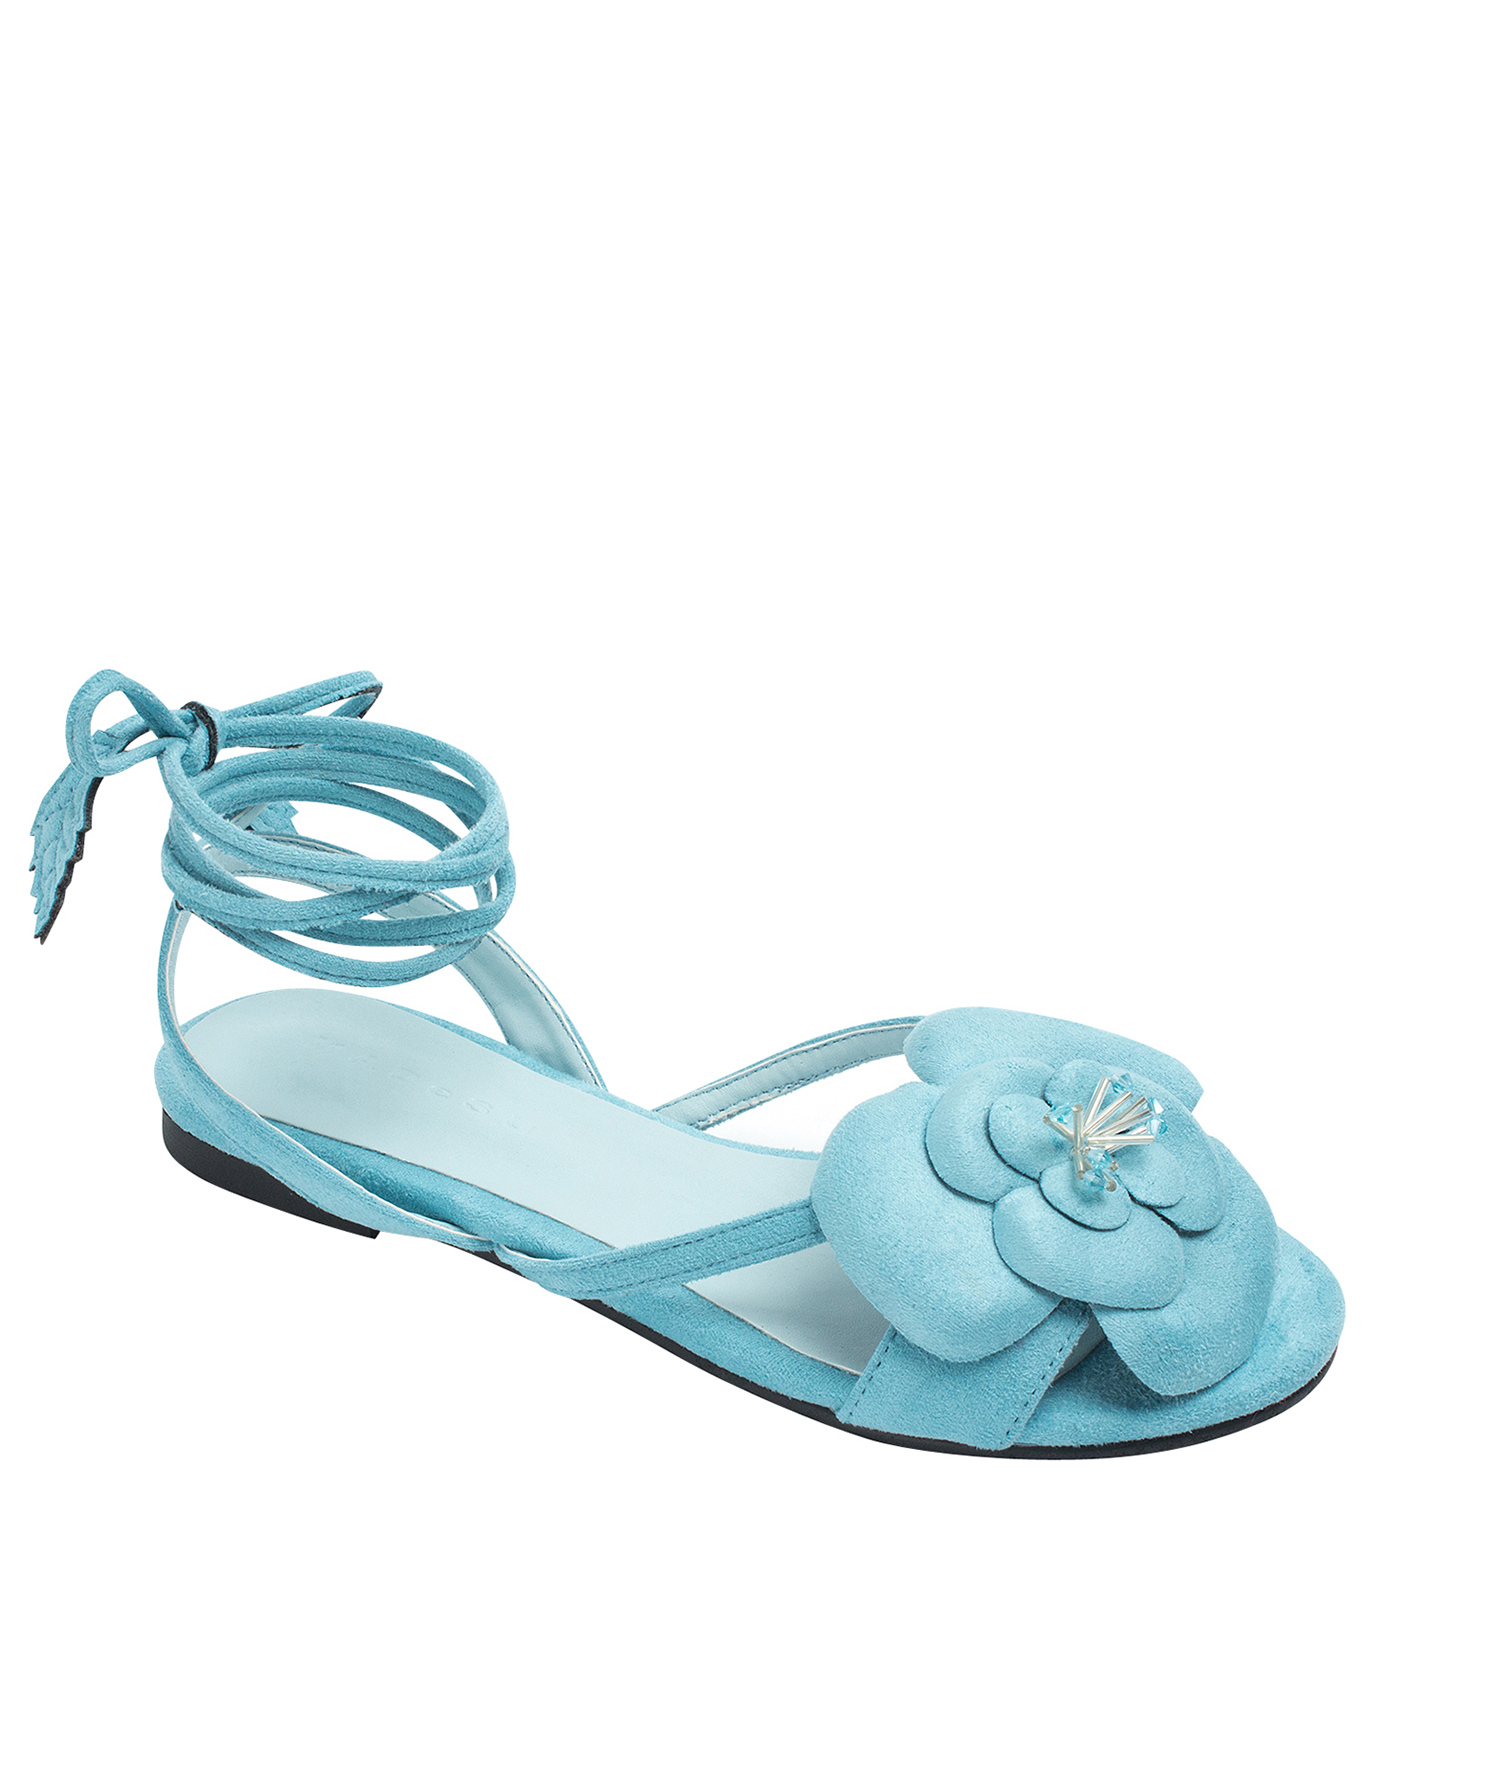 6a5fc48f0f51 Annakastle Womens Flower Ankle-Wrap Flat Sandals Light Blue